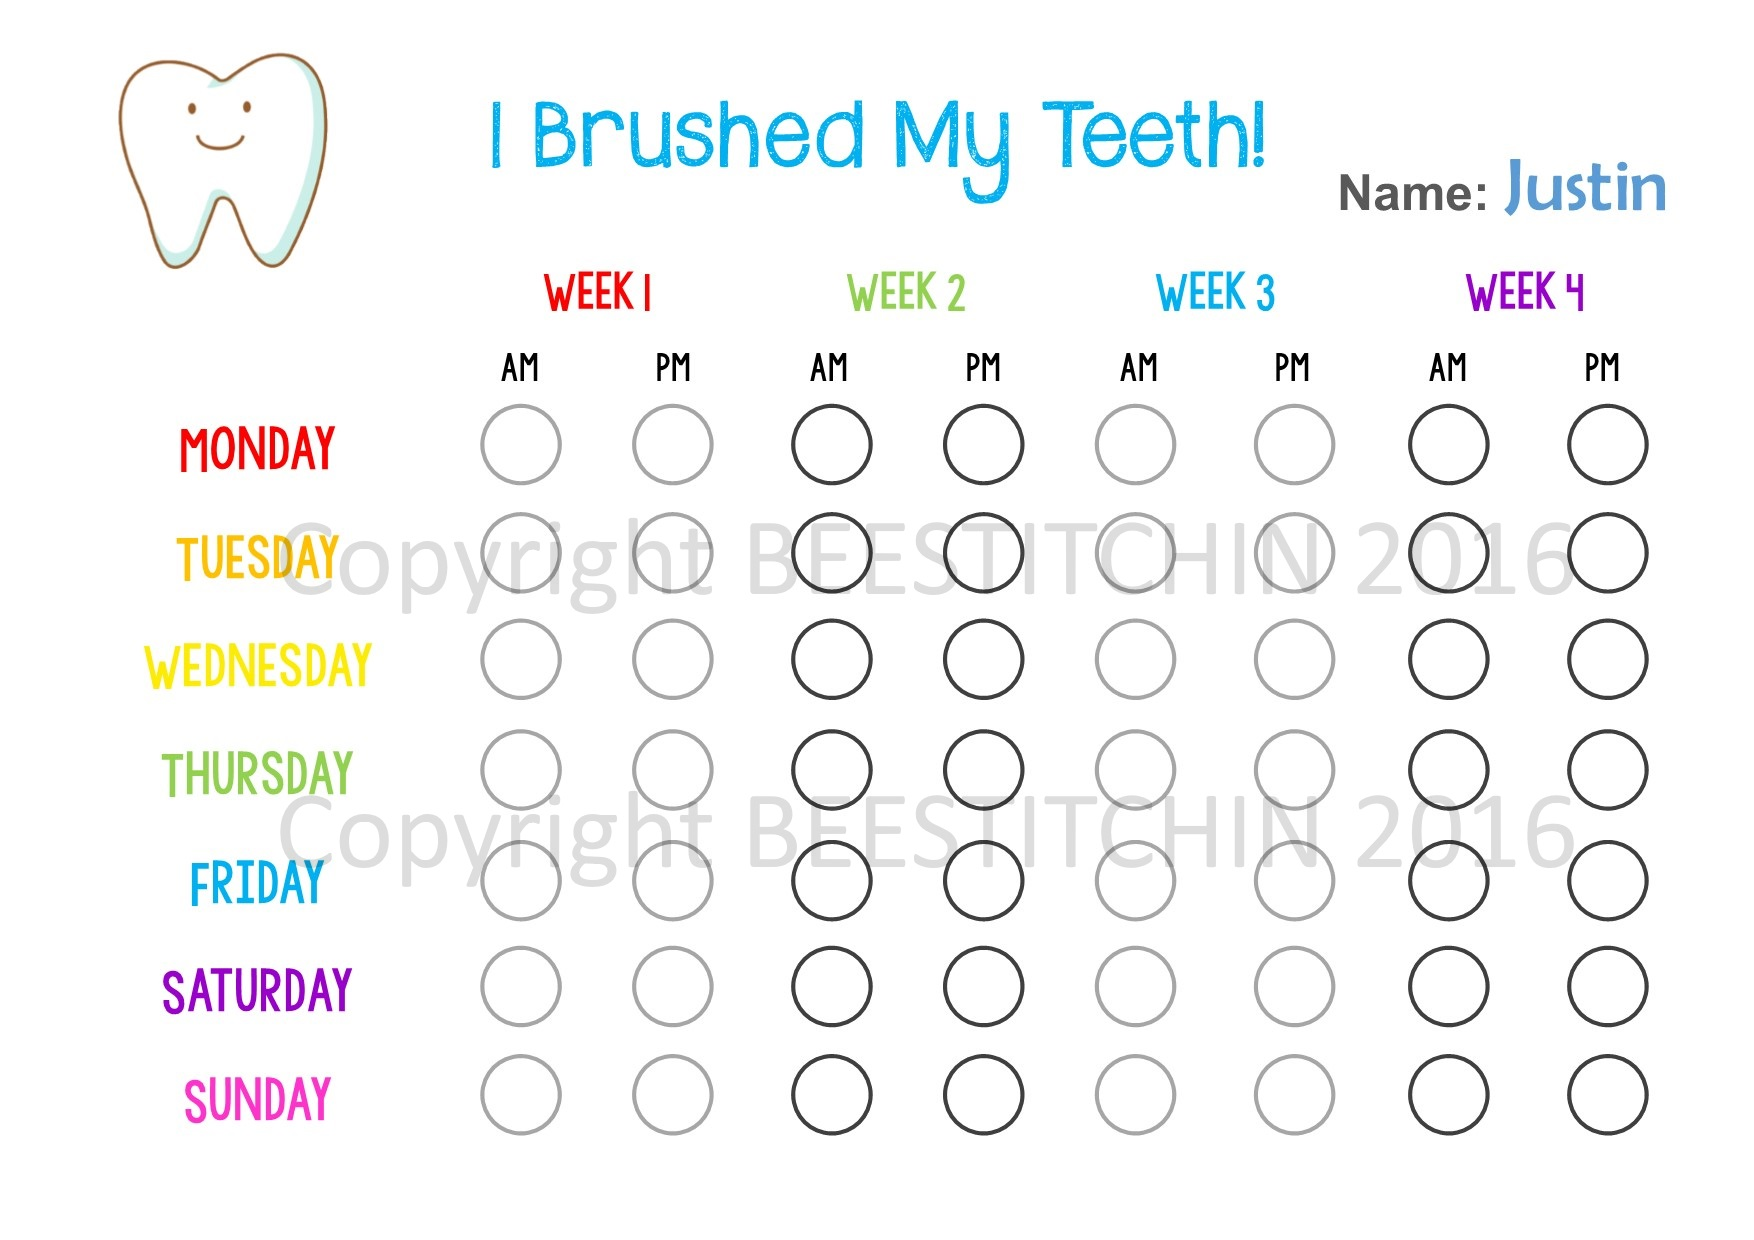 photograph relating to Printable Tooth Brushing Charts named I Brushed My Enamel - Enamel Brushing Chart 4 colors PRINTABLE